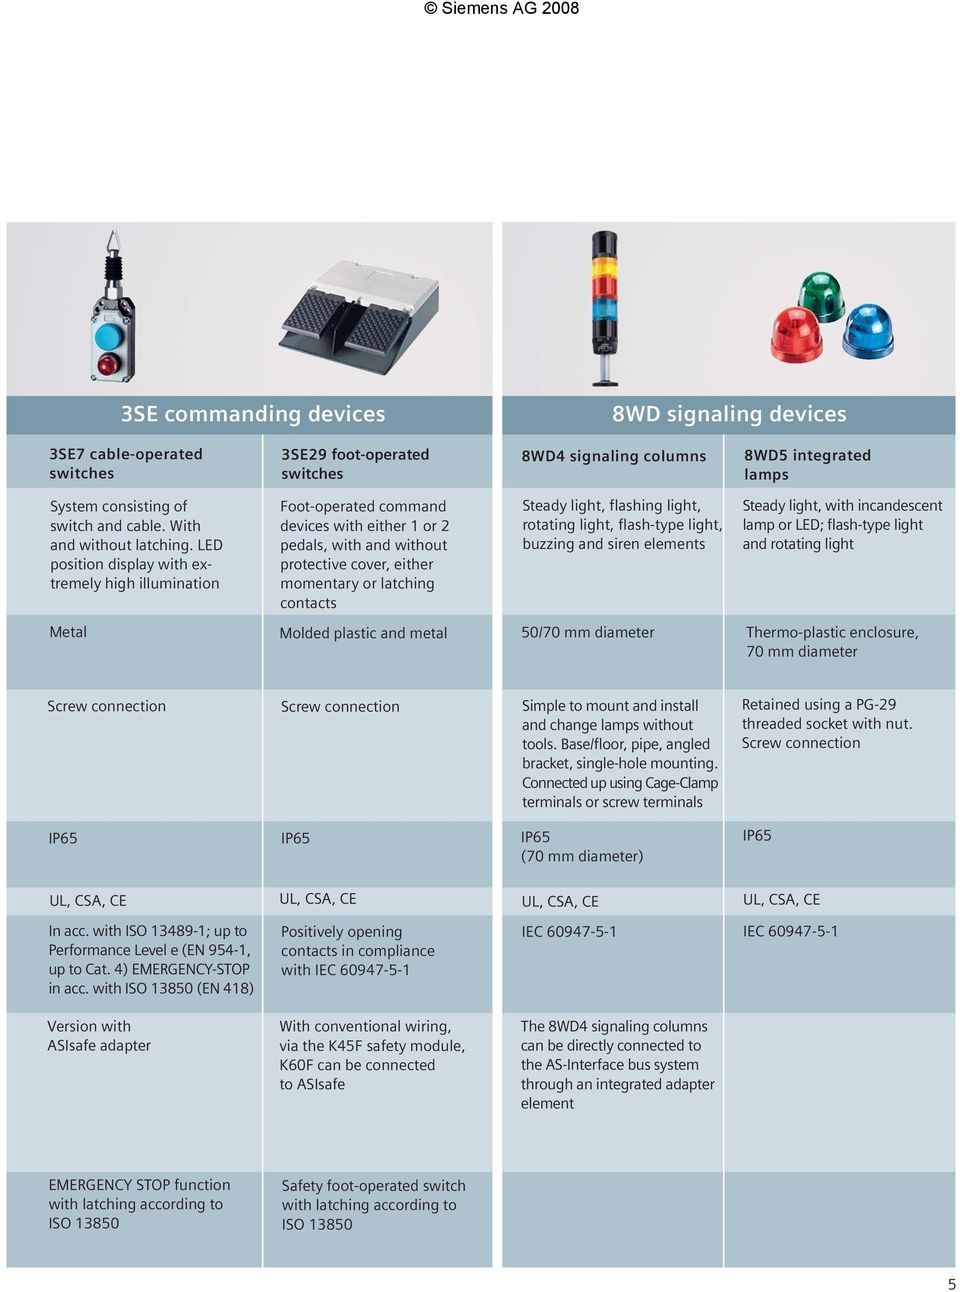 Siemens Ag Pushbuttons And Indicator Lights For Every Application Rotating 038 Flashing 230v Led Position Display With Extremely High Illumination Foot Operated Command Devices Either 1 Or